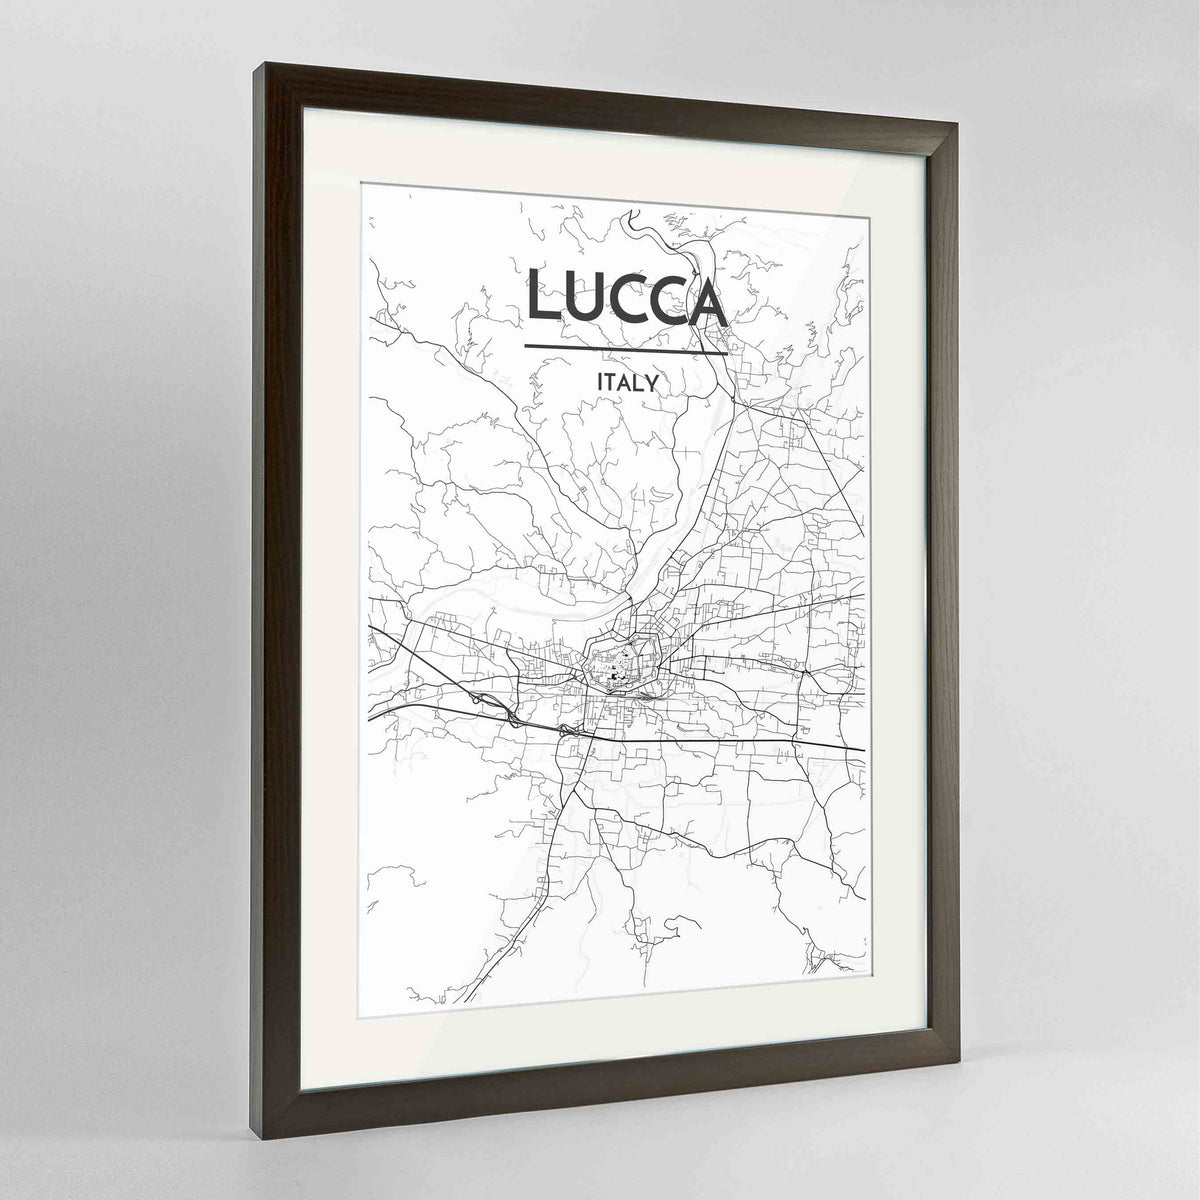 "Framed Lucca Map Art Print 24x36"" Contemporary Walnut frame Point Two Design Group"